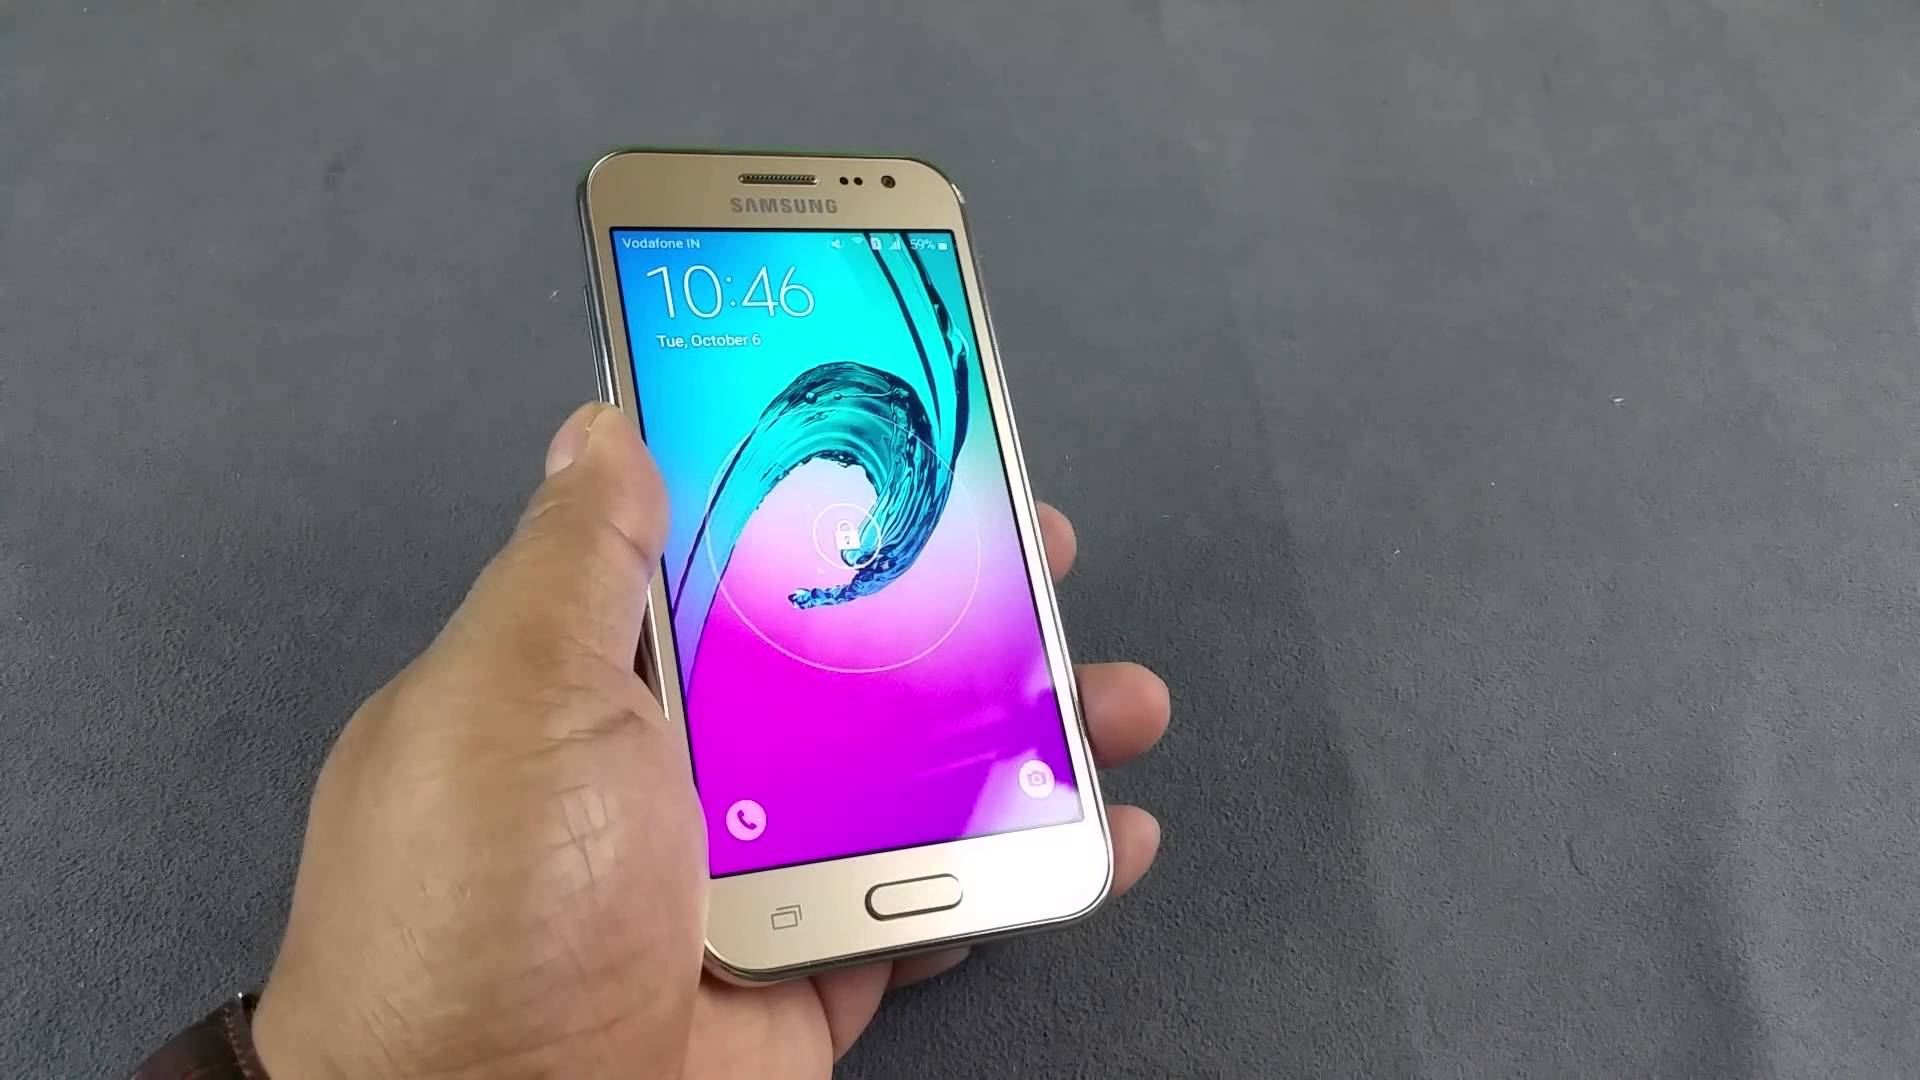 Samsung Galaxy J2 Hd Wallpaper Download Samsung J2 Notification Light 1277909 Hd Wallpaper Backgrounds Download